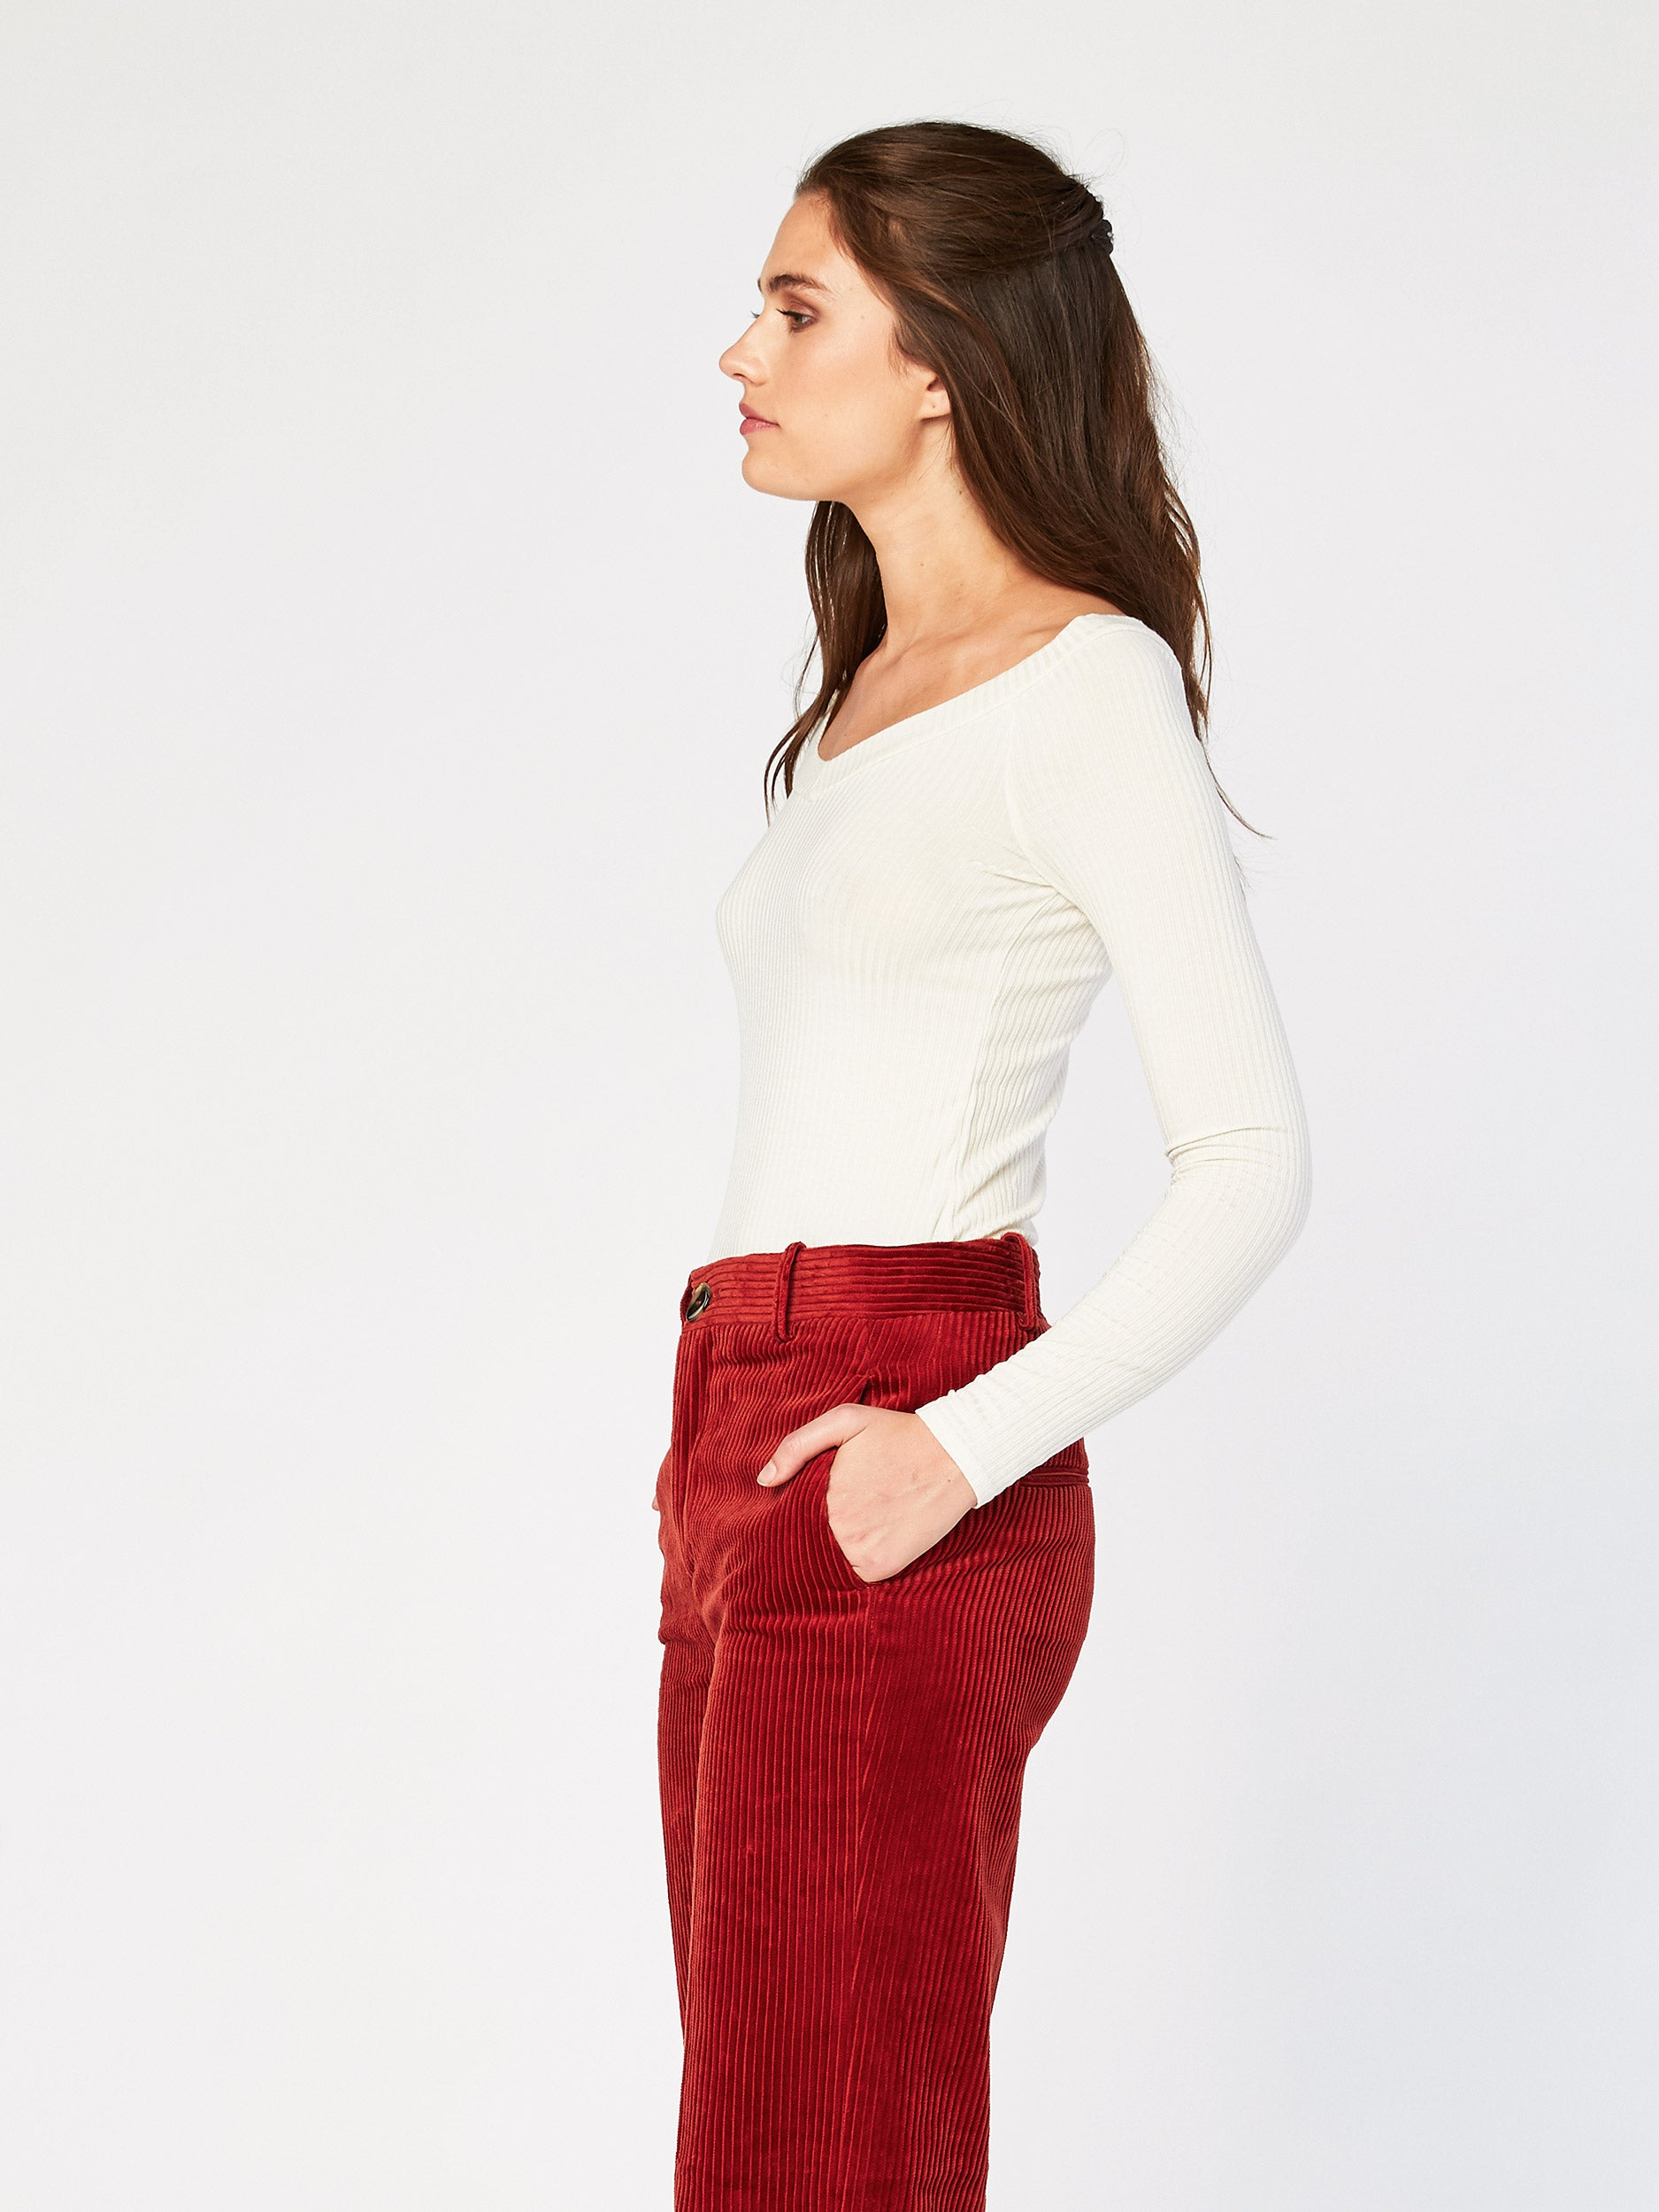 Mabel Open Shoulder Long Sleeve Rib Tee